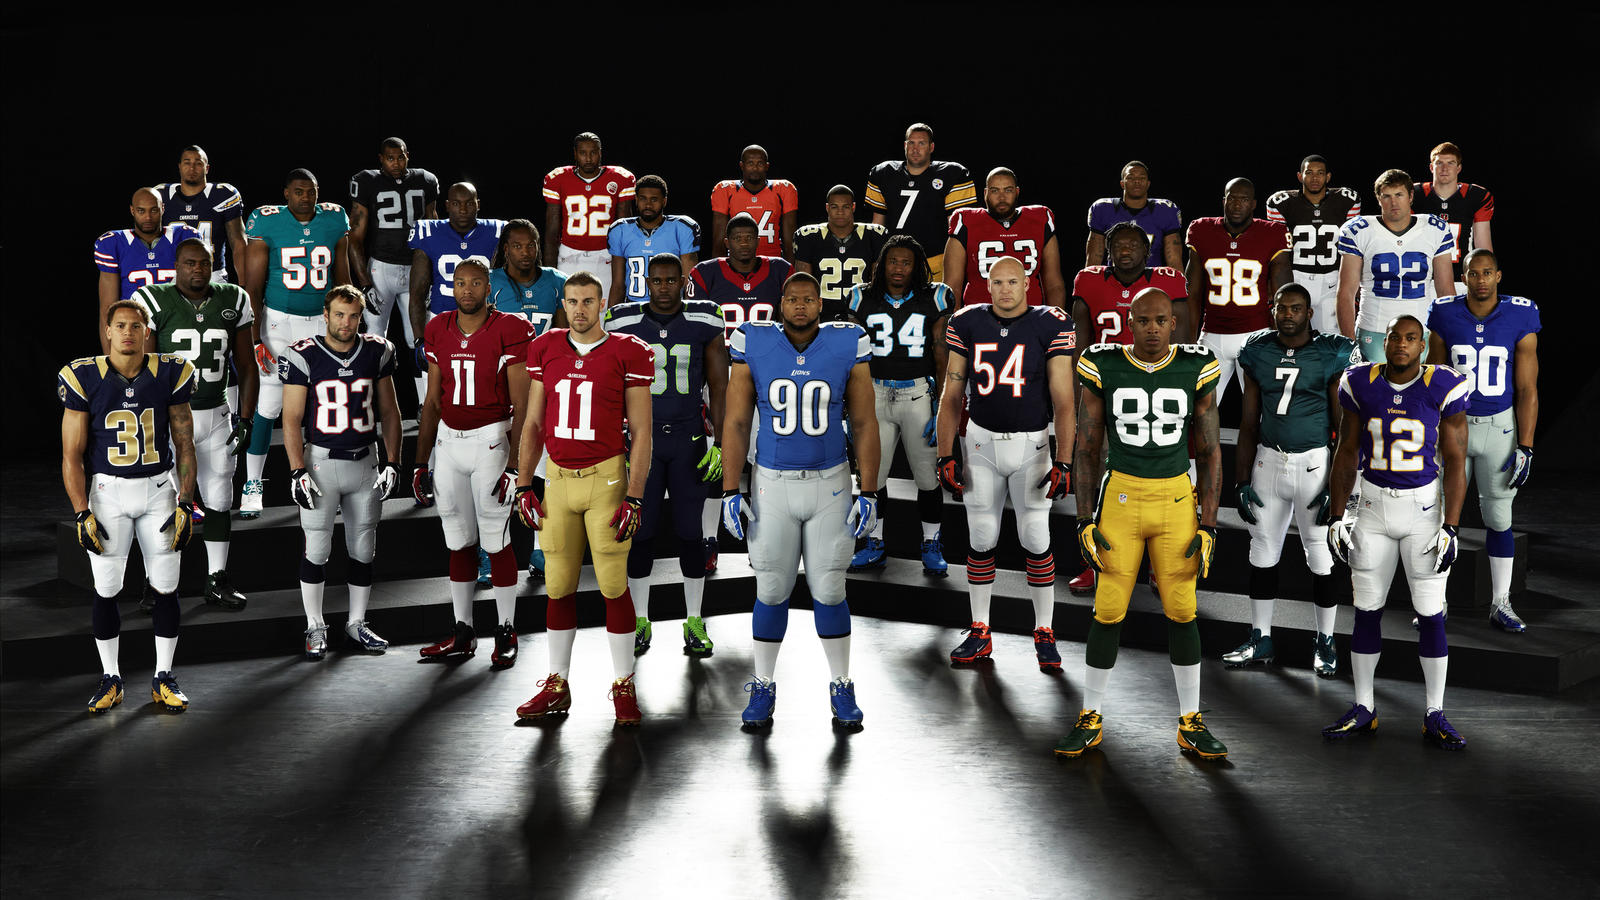 04d0b8c9a36 Nike_NFL_2012_TeamUniforms_03APR. Nike_NFL_UniformUnveil_CDenson_03APR2012.  Nike_NFL_UniformUnveil_Cleats_03APR2012